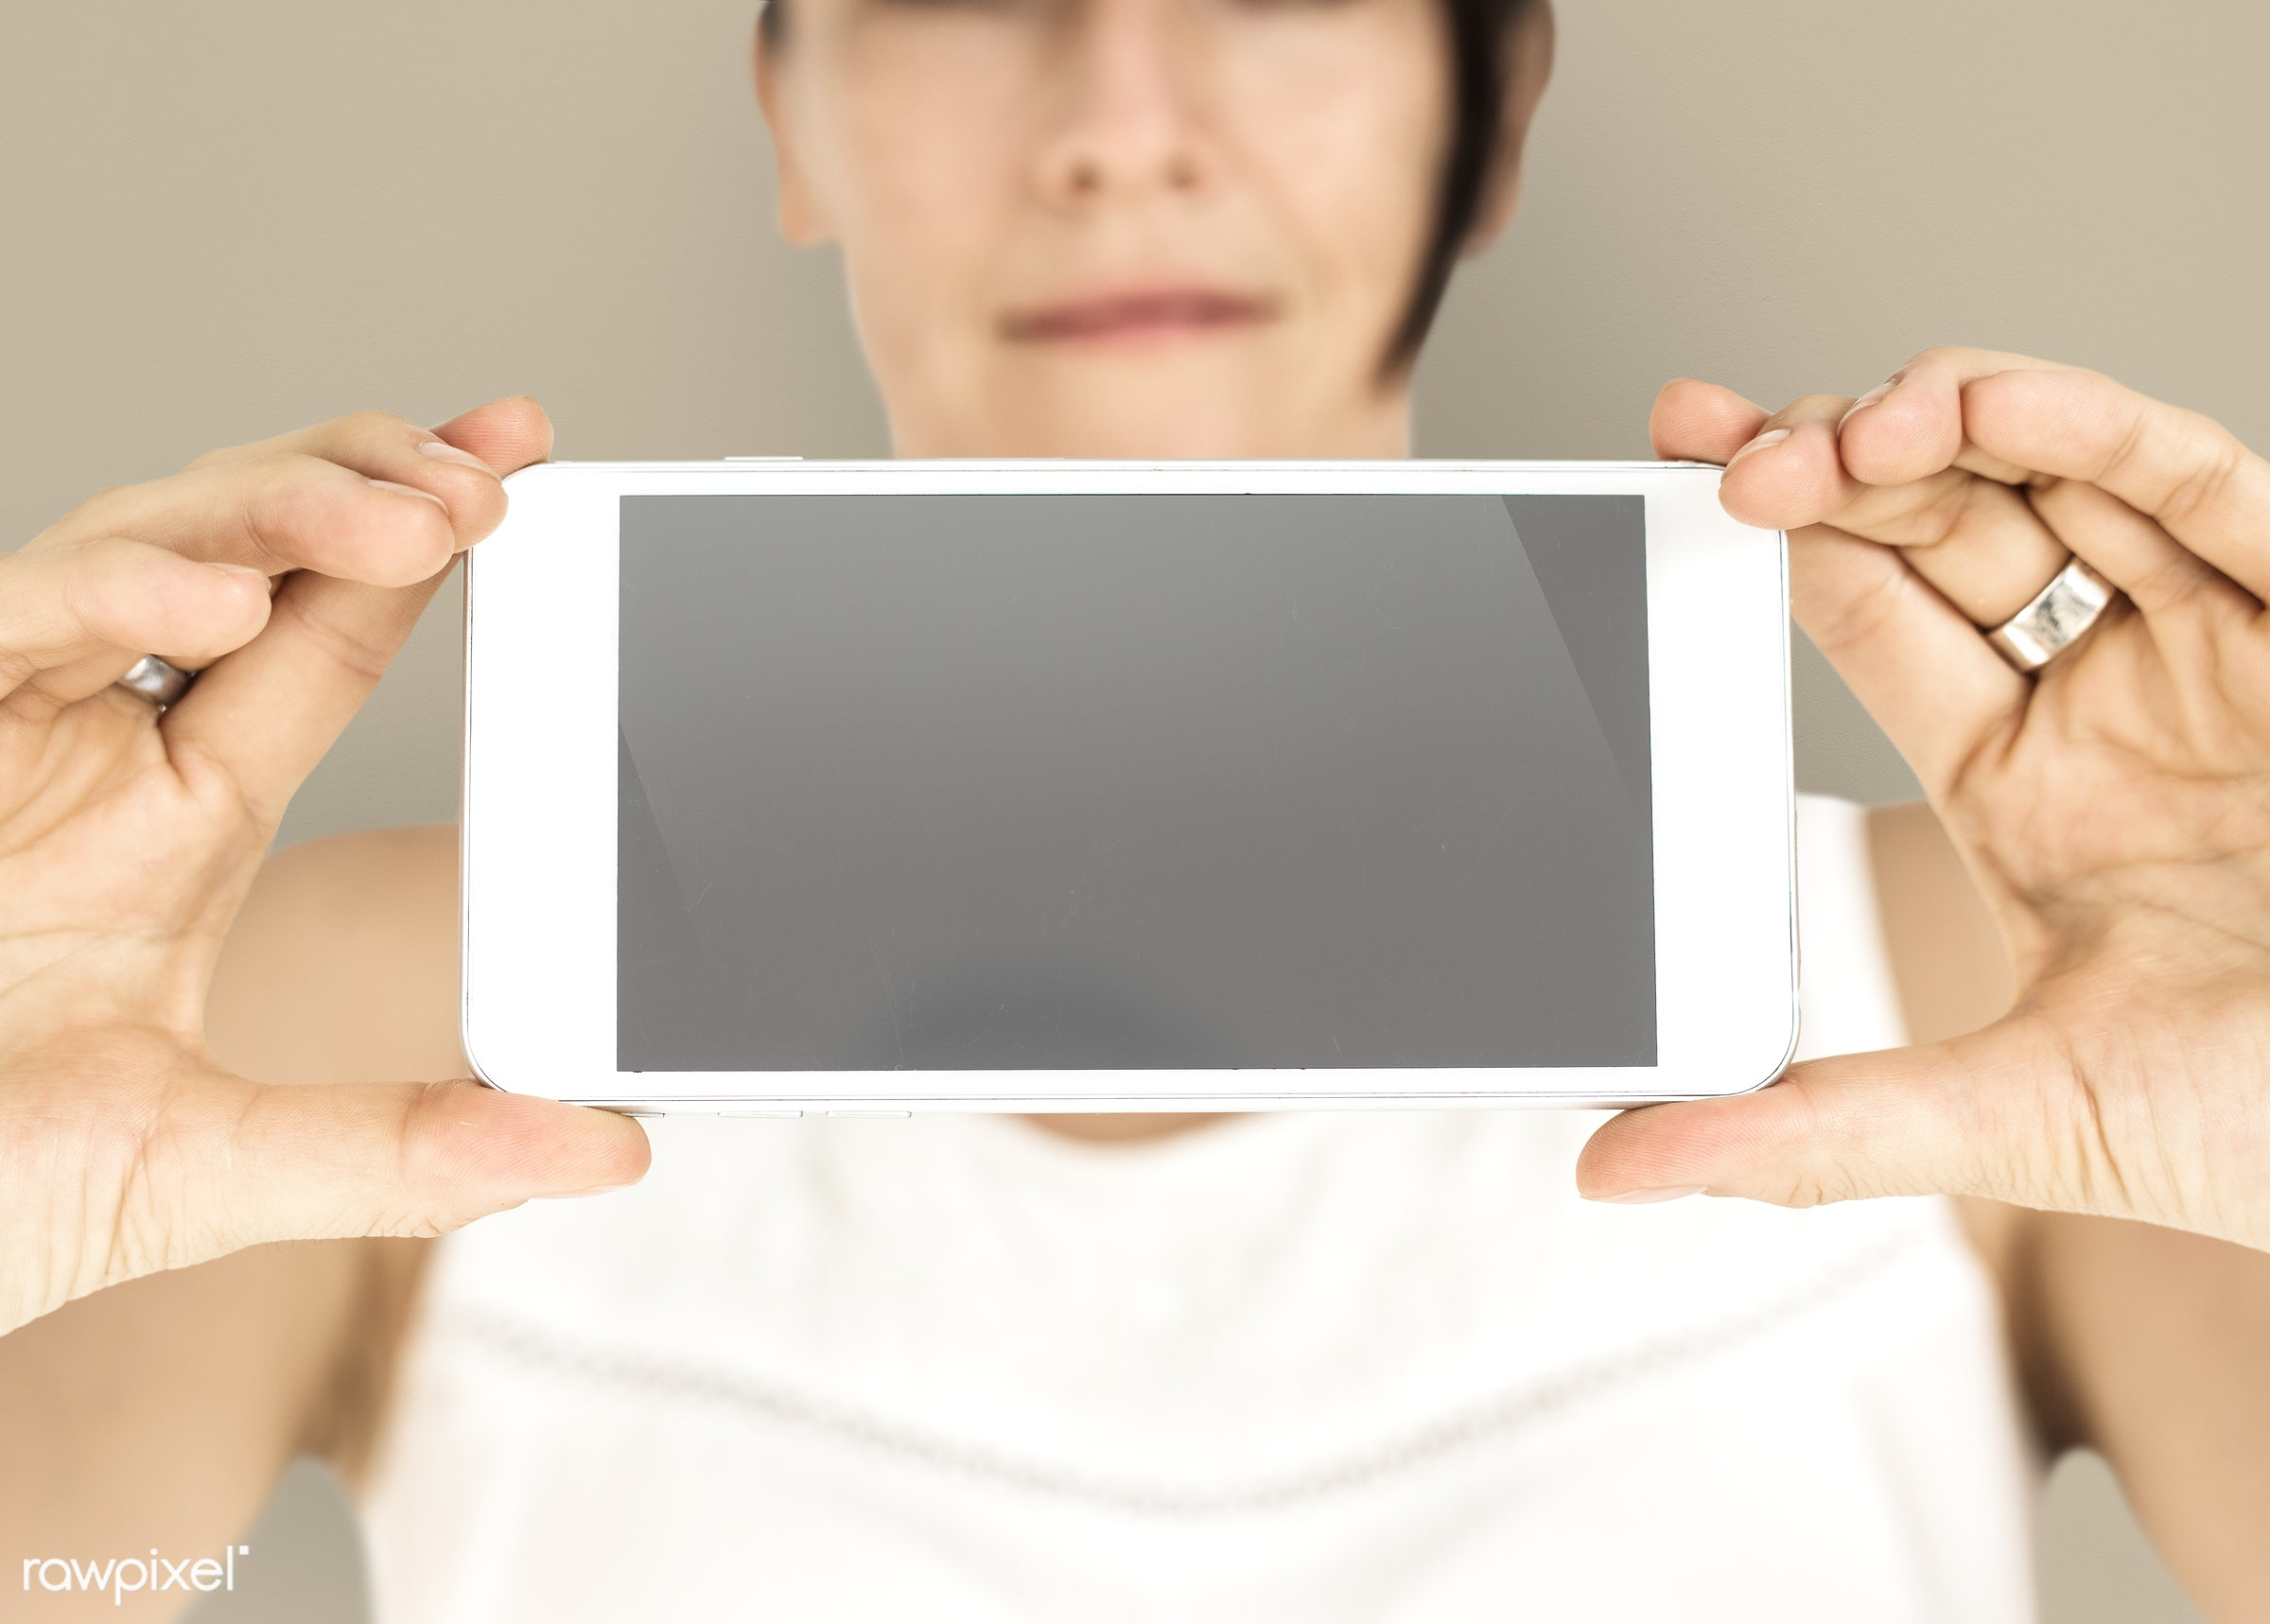 expression, studio, person, phone, portable, technology, holding, object, landscape, people, network, positivity, caucasian...